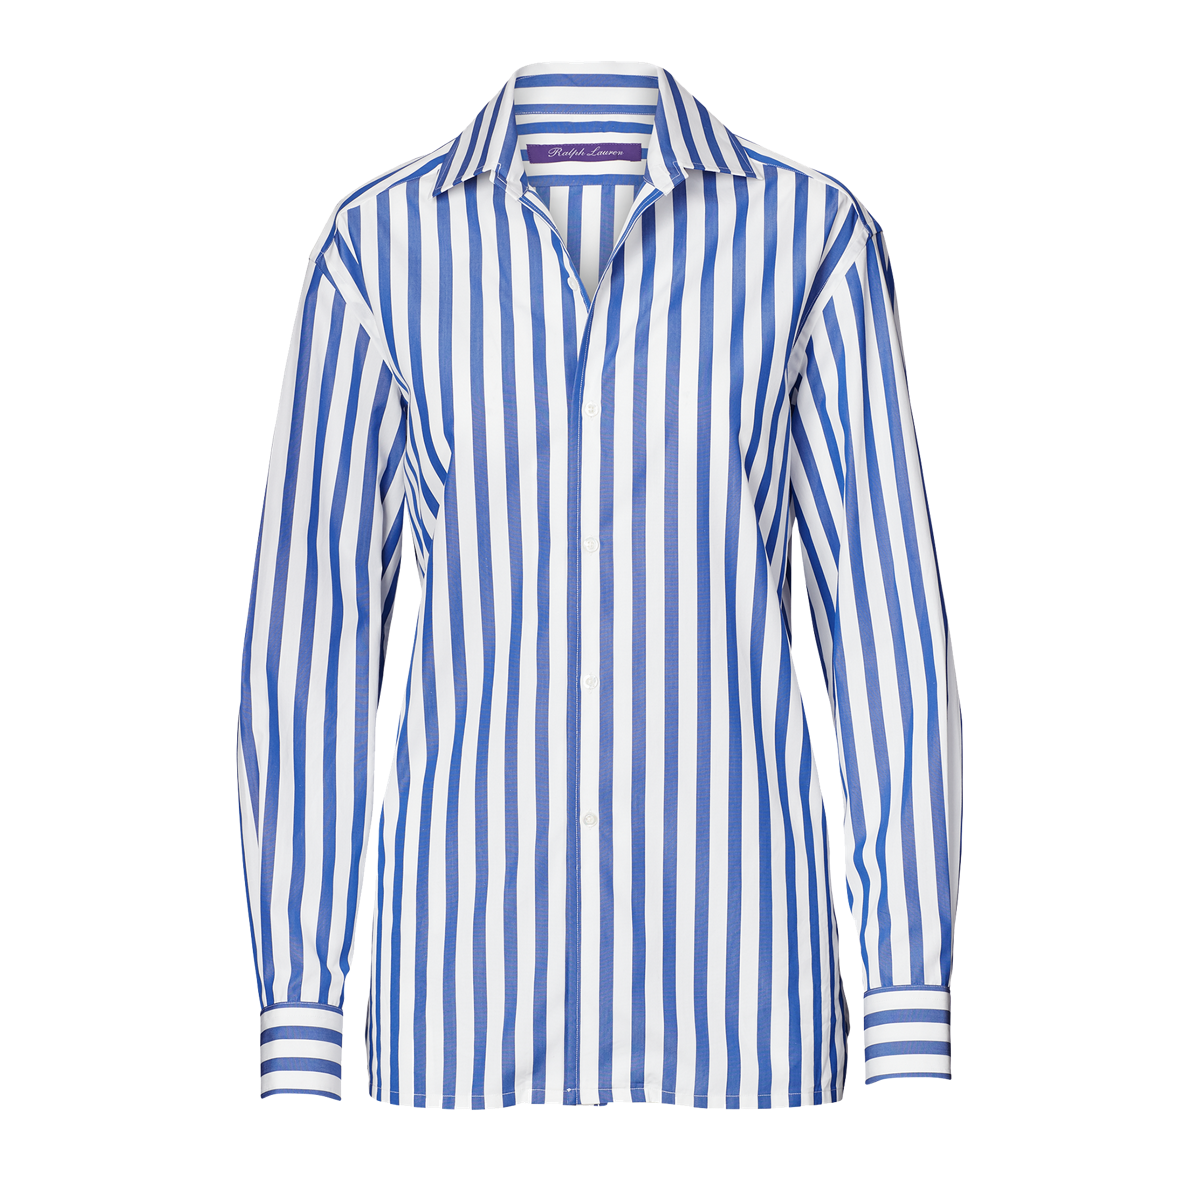 076a4a3d3 Striped Cotton Shirt